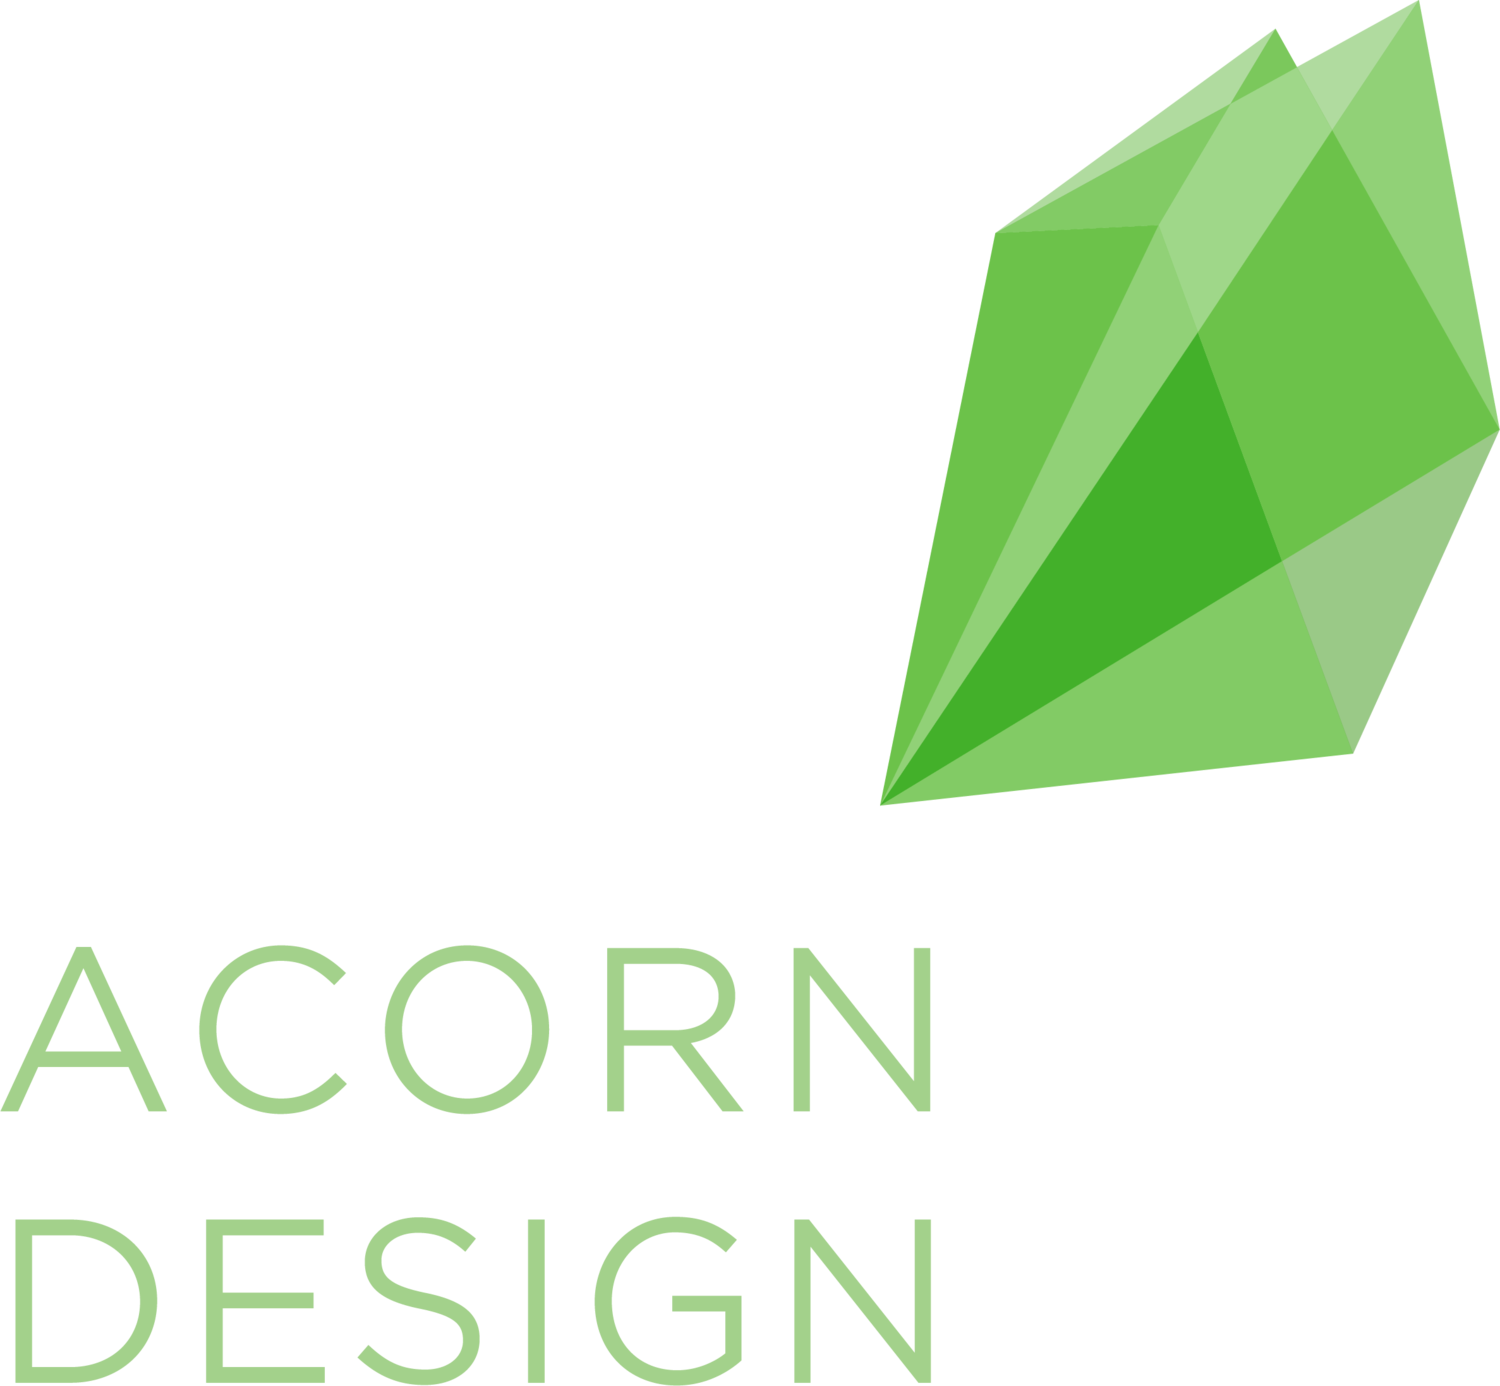 Acorn Design - Industrial and Product Design in Norway